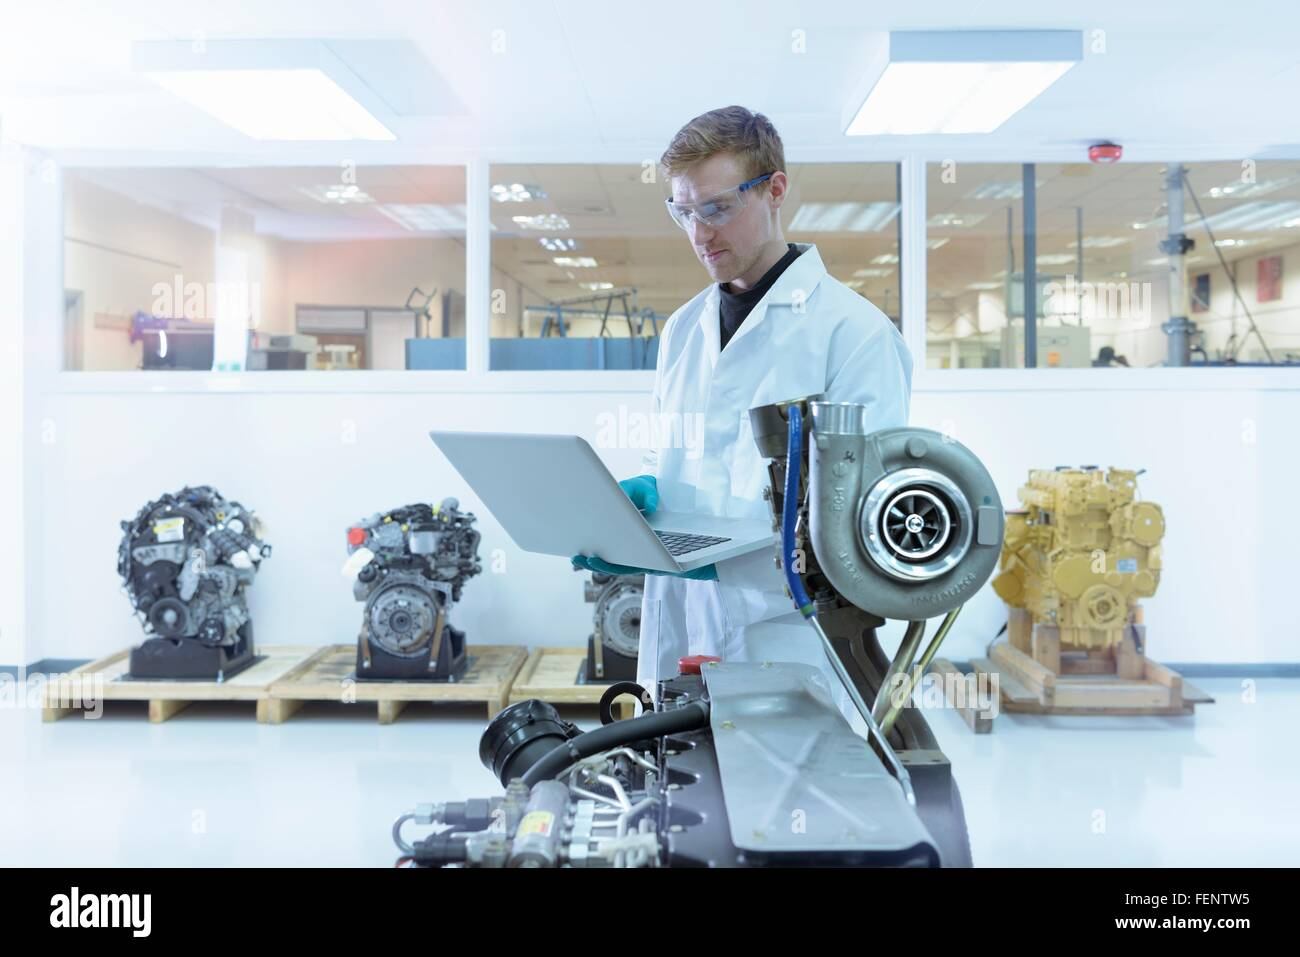 Scientist using laptop in turbo, de laboratoire de recherche de l'automobile Photo Stock